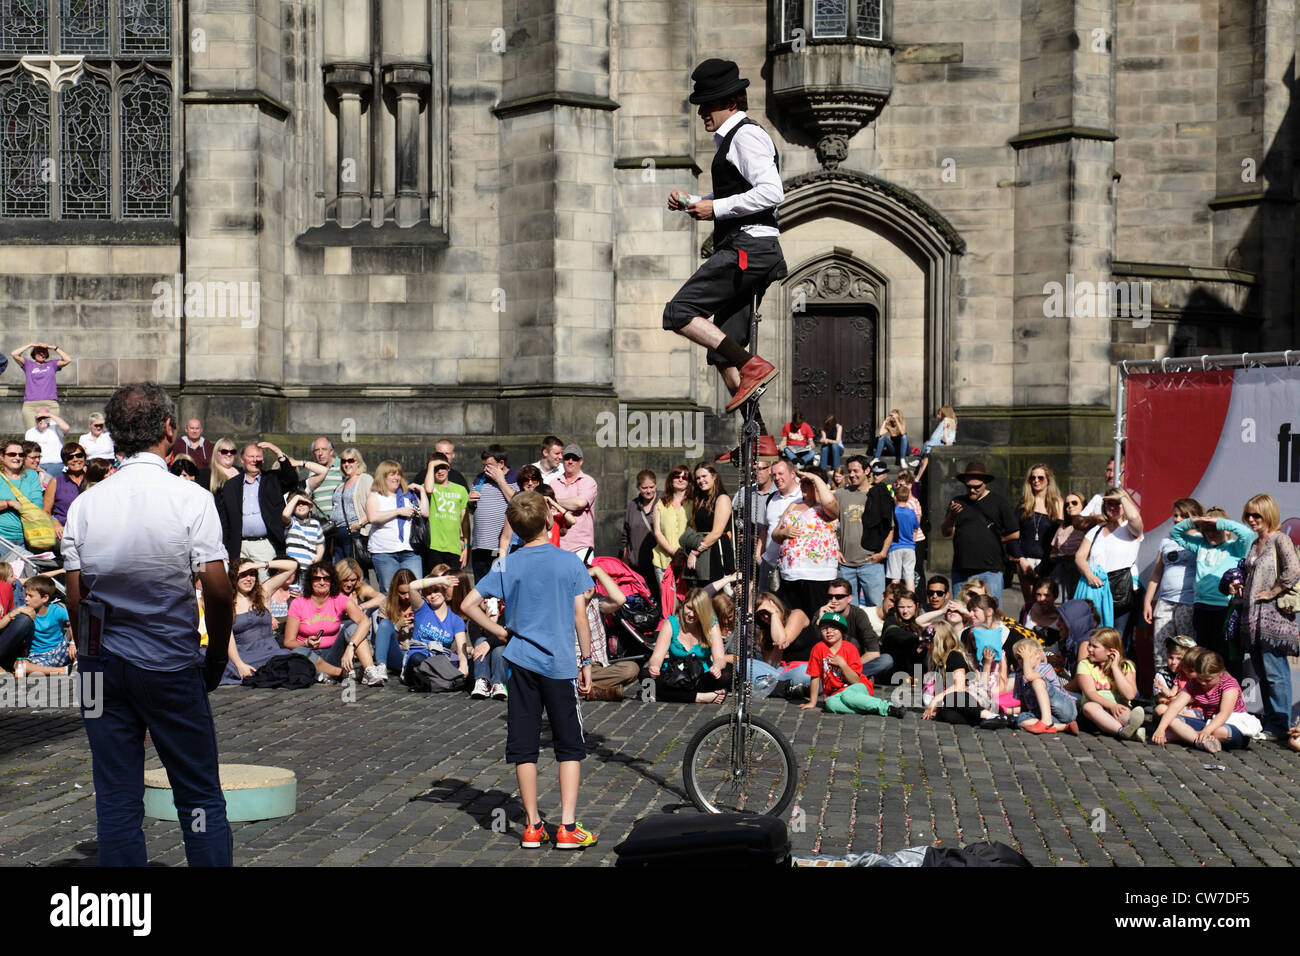 Spectators watching a street performer on a uni cycle at the Edinburgh Festival Fringe in Scotland, UK - Stock Image